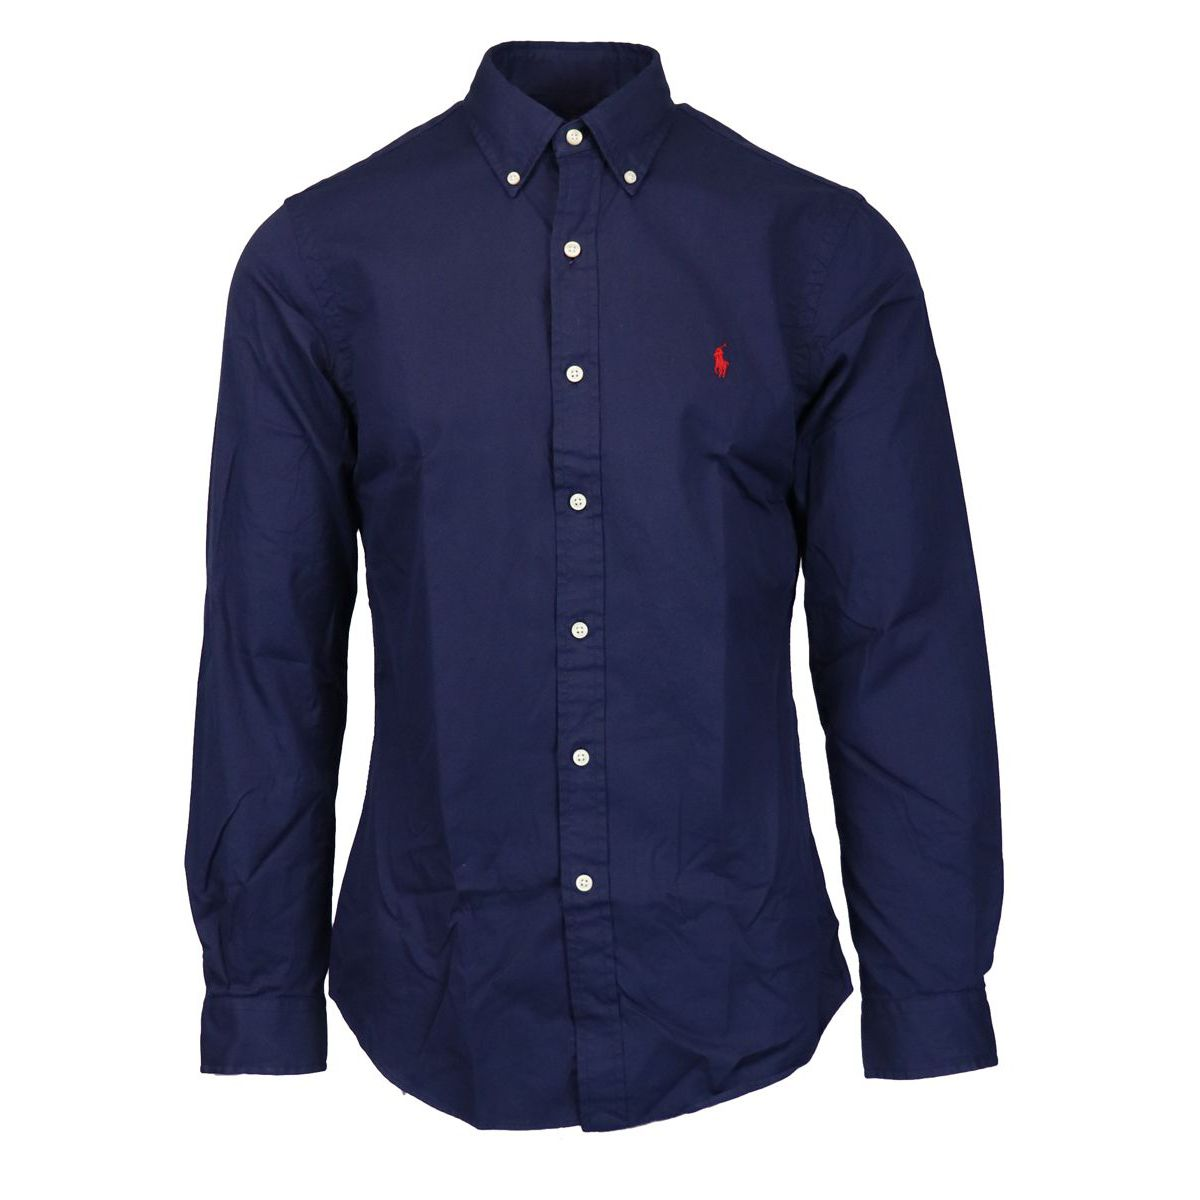 Button-down shirt in slim-fit cotton Navy Polo Ralph Lauren